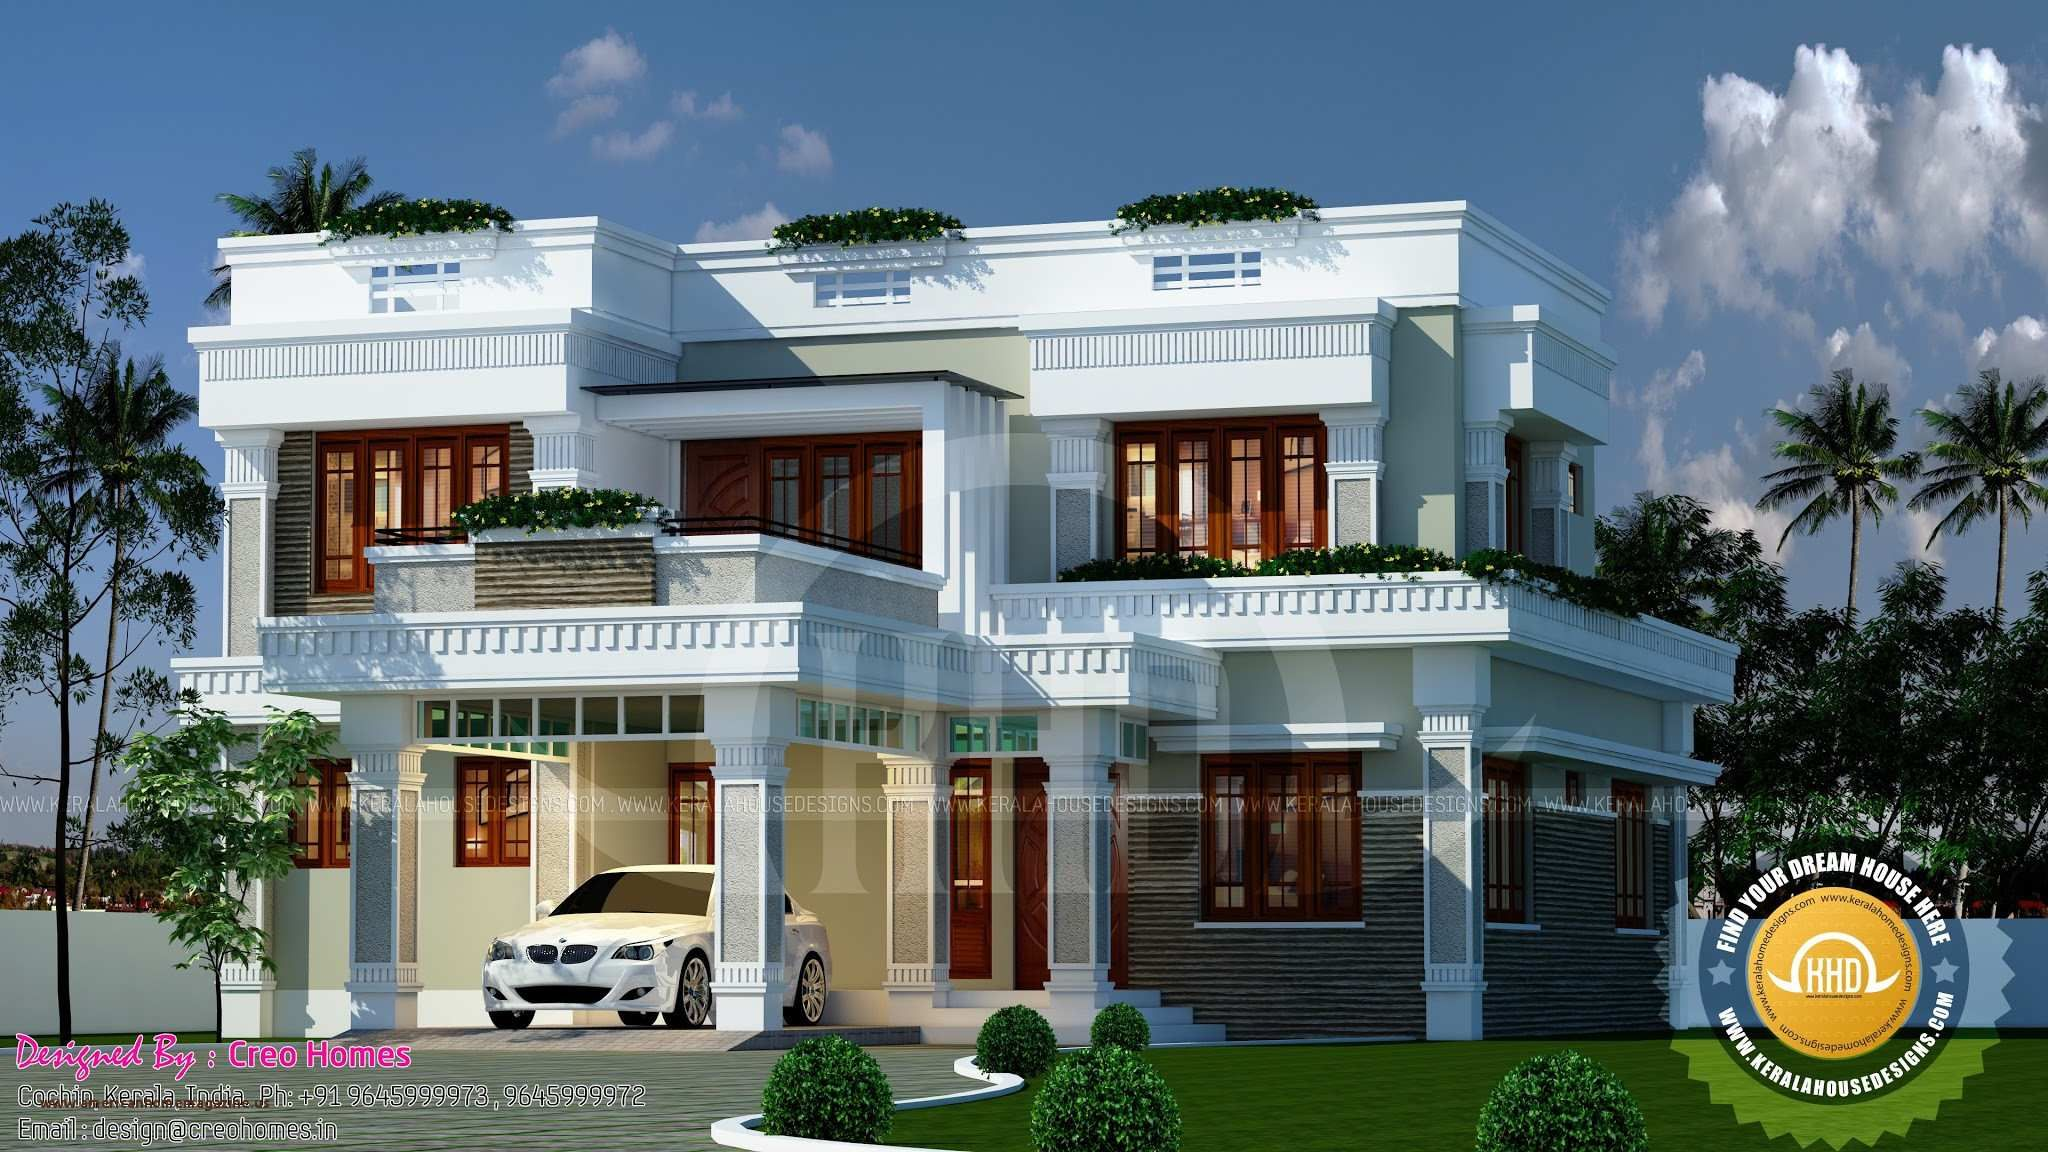 Indian Modern Bungalow Exterior House Roof Flat Roof House Designs Victorian House Plans